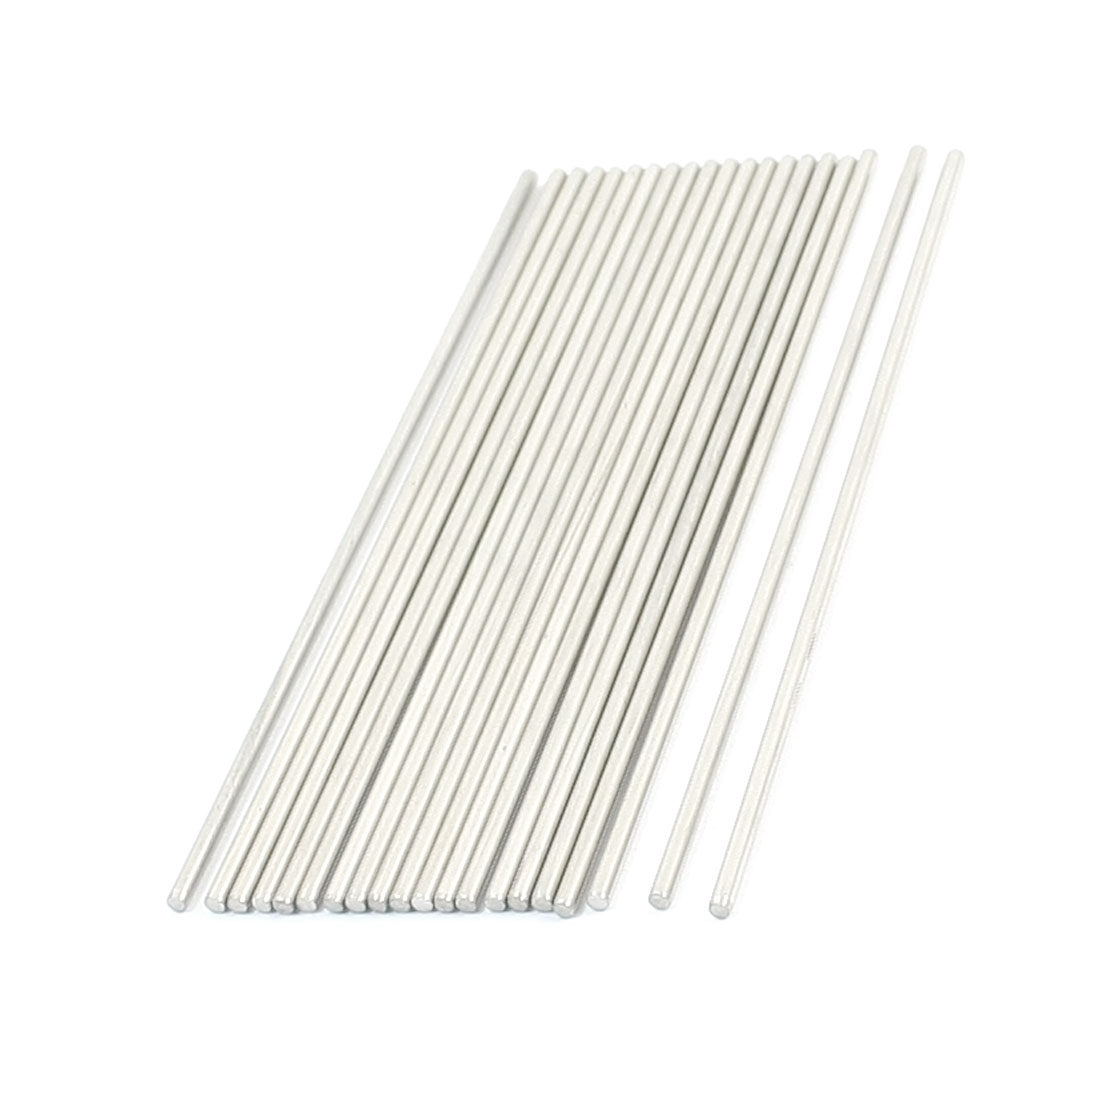 20Pcs Hardware Tool Stainless Steel 100x1.9mm Transmission Round Rods